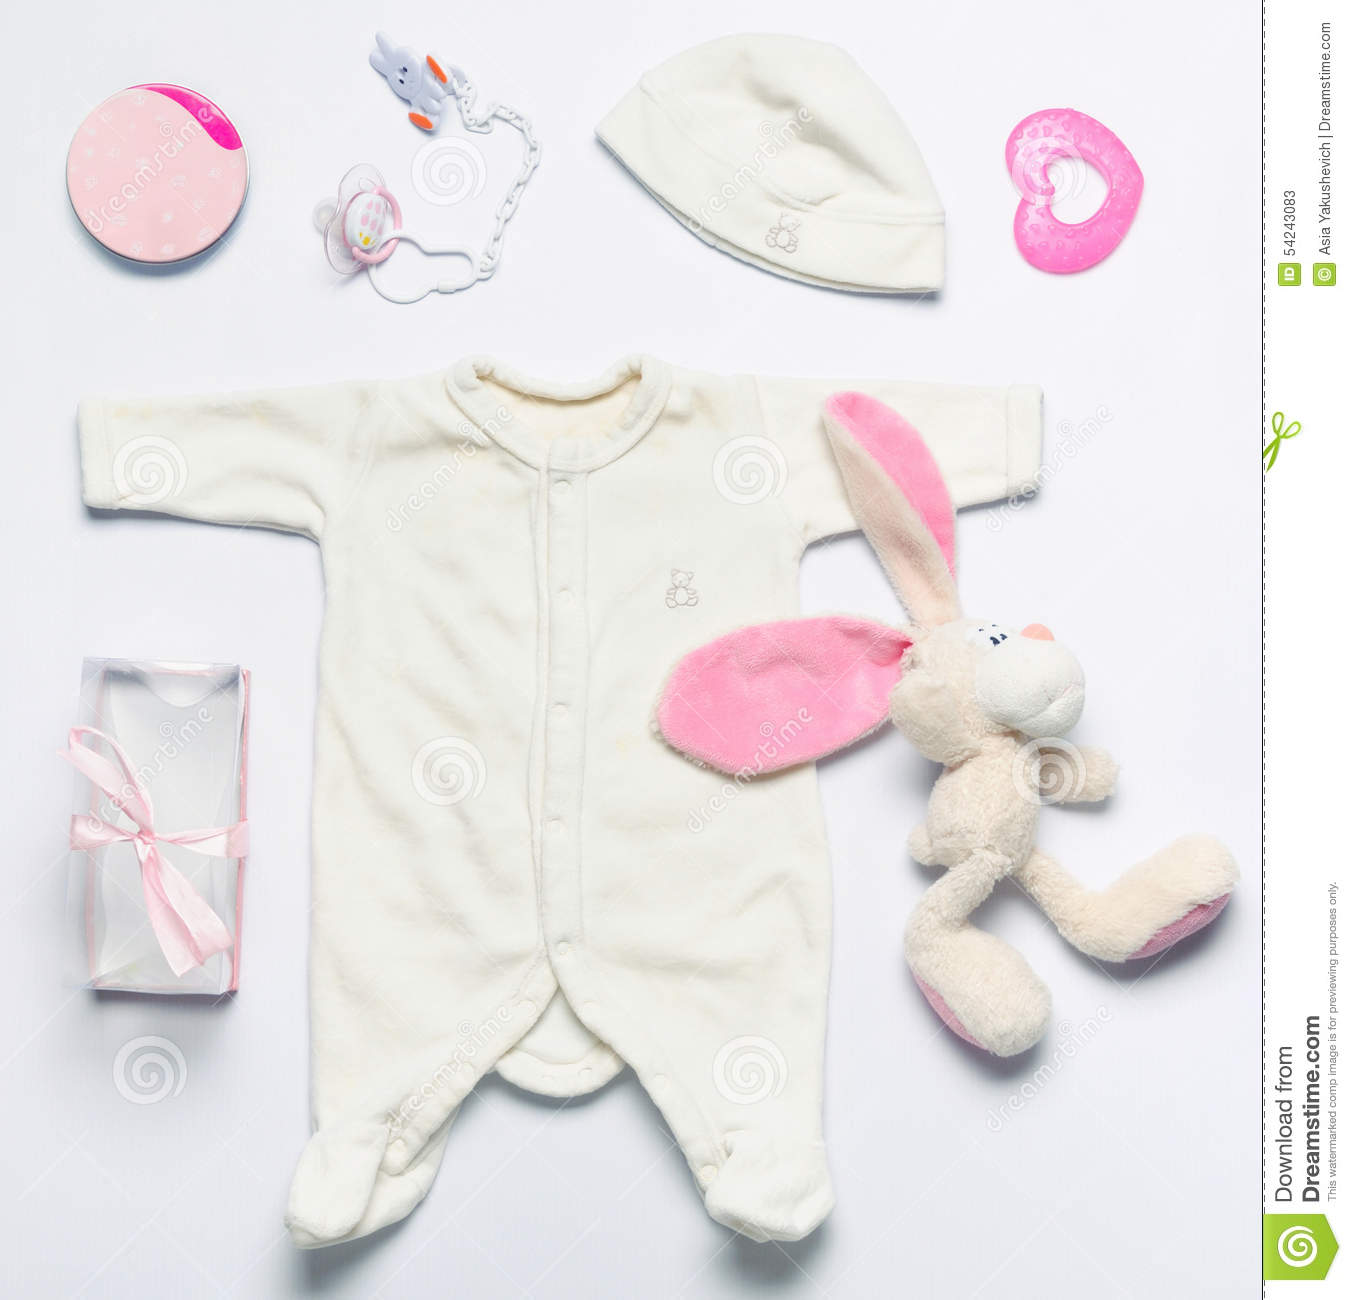 aa62c4fb9 Set Of Fashion Trendy Stuff And Toys For Newborn Baby Girl In So ...